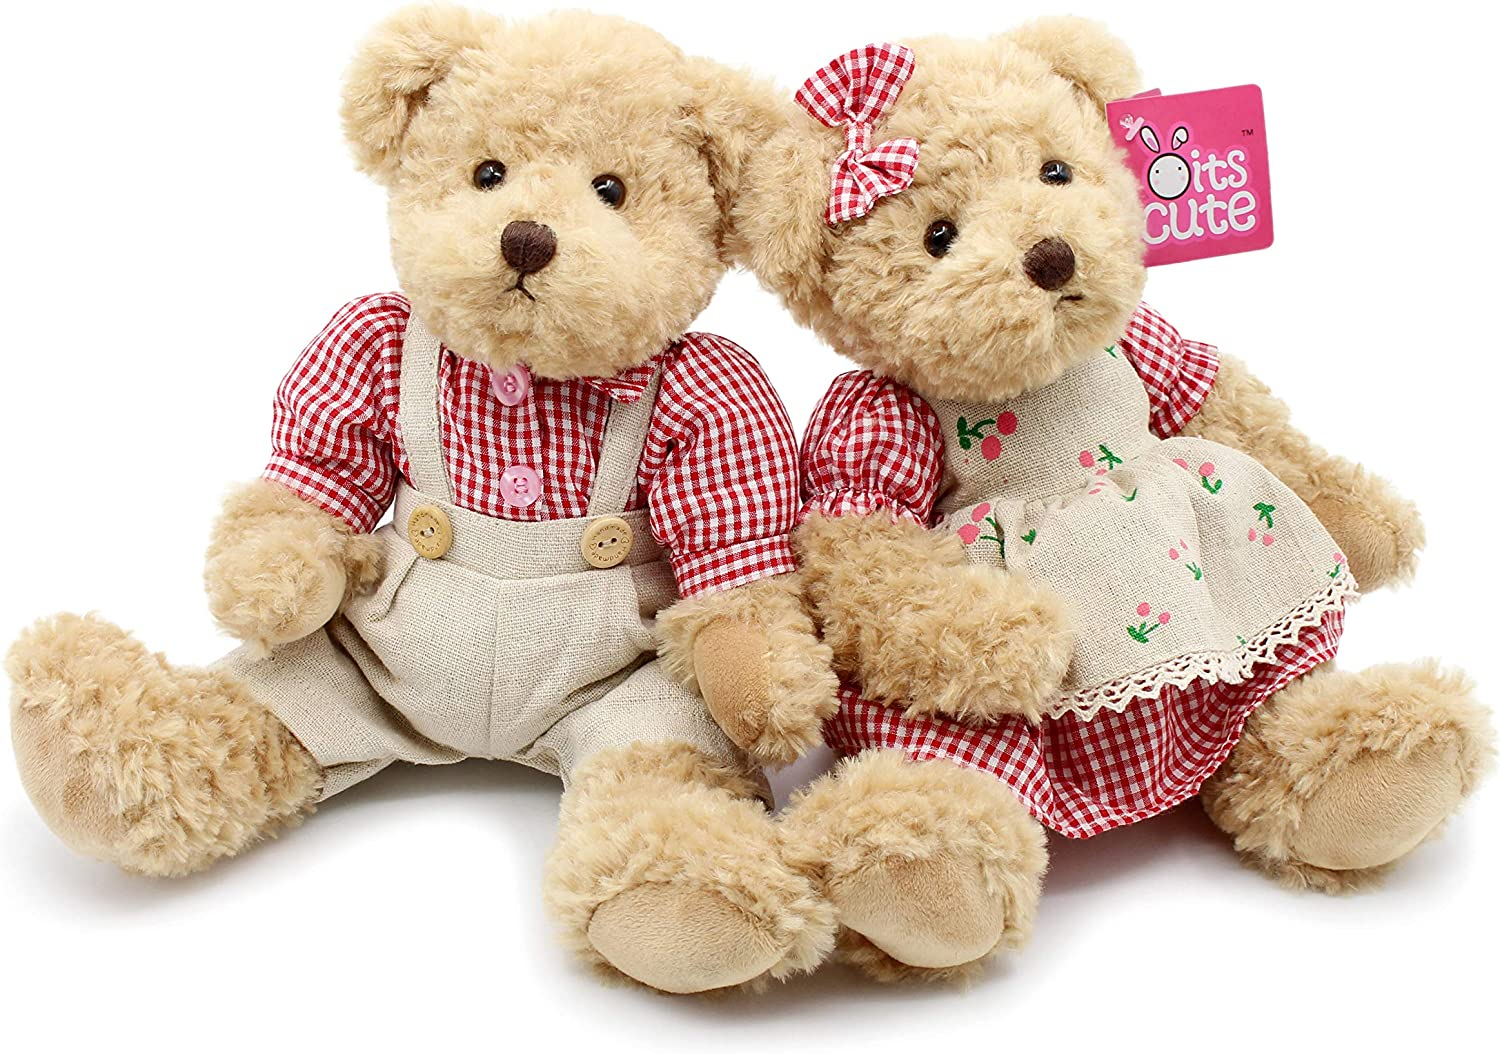 Oitscute 2-Pack Teddy Bear,Cute Stuffed Animal,Couple Gift Soft Plush Toy 11inch Blue Plaid Clothes